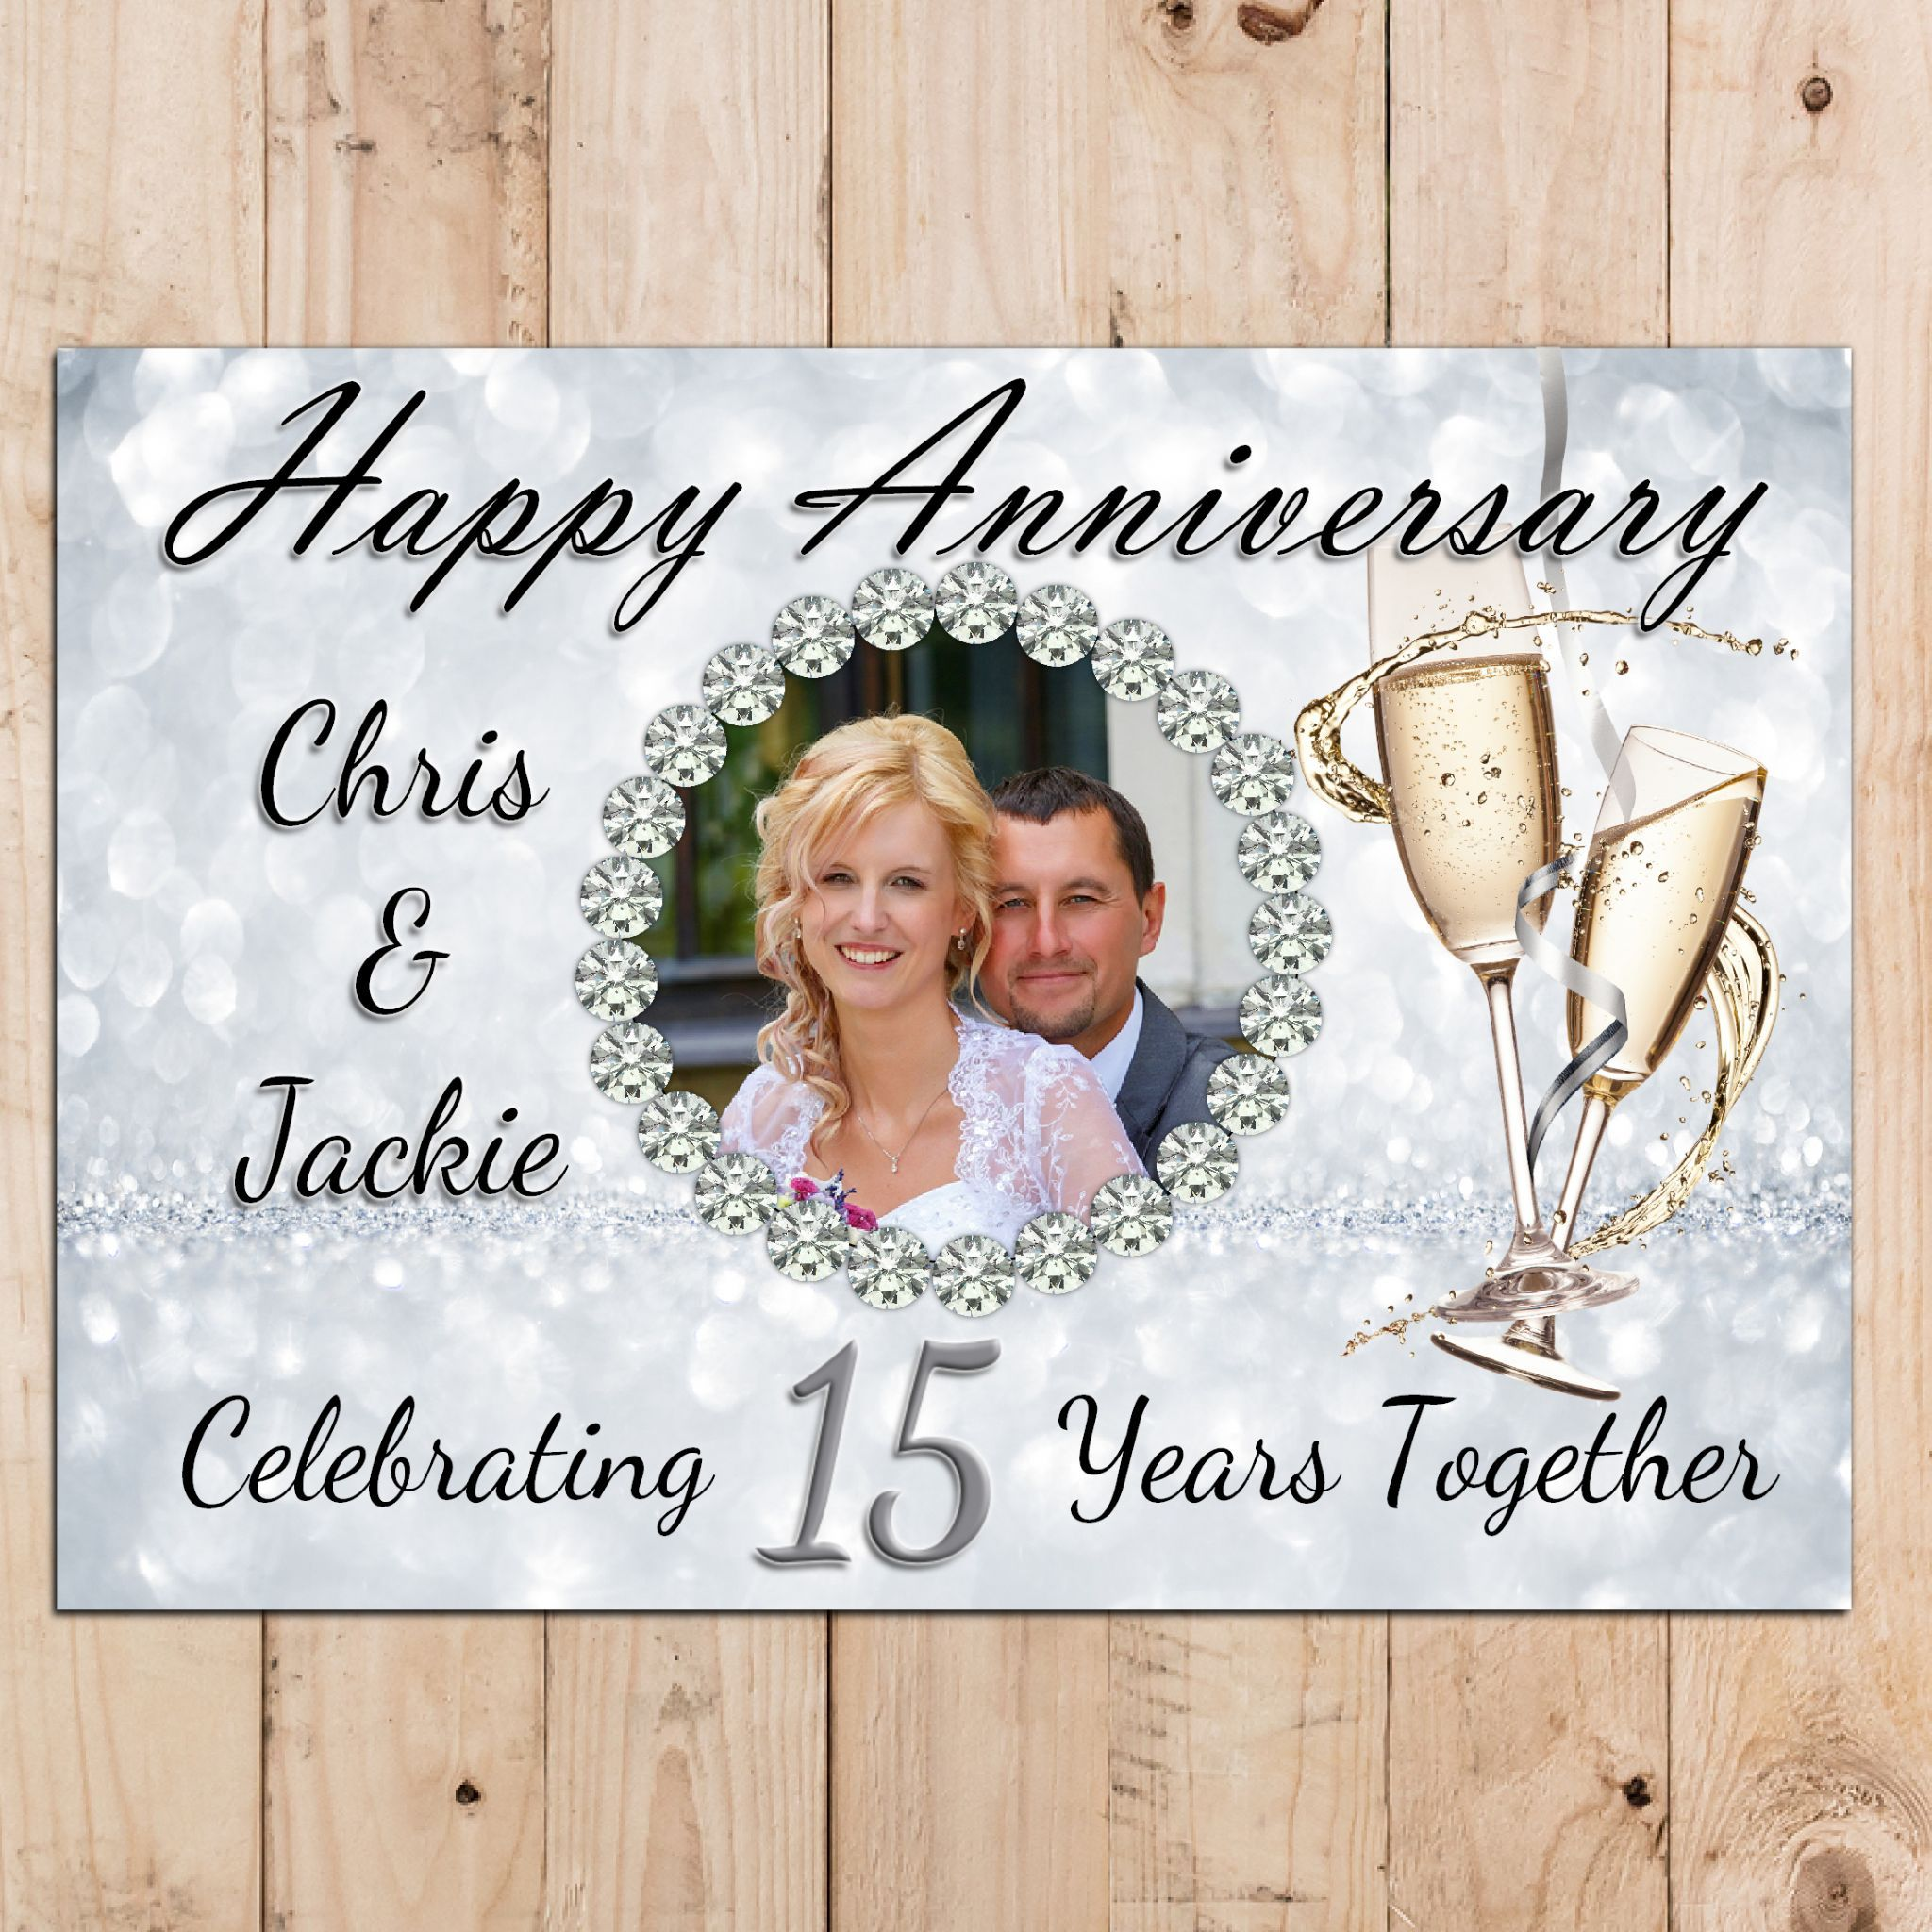 Personalized Wedding Anniversary Banners In 2020 Anniversary Banner Personalised Wedding Banner Wedding Anniversary